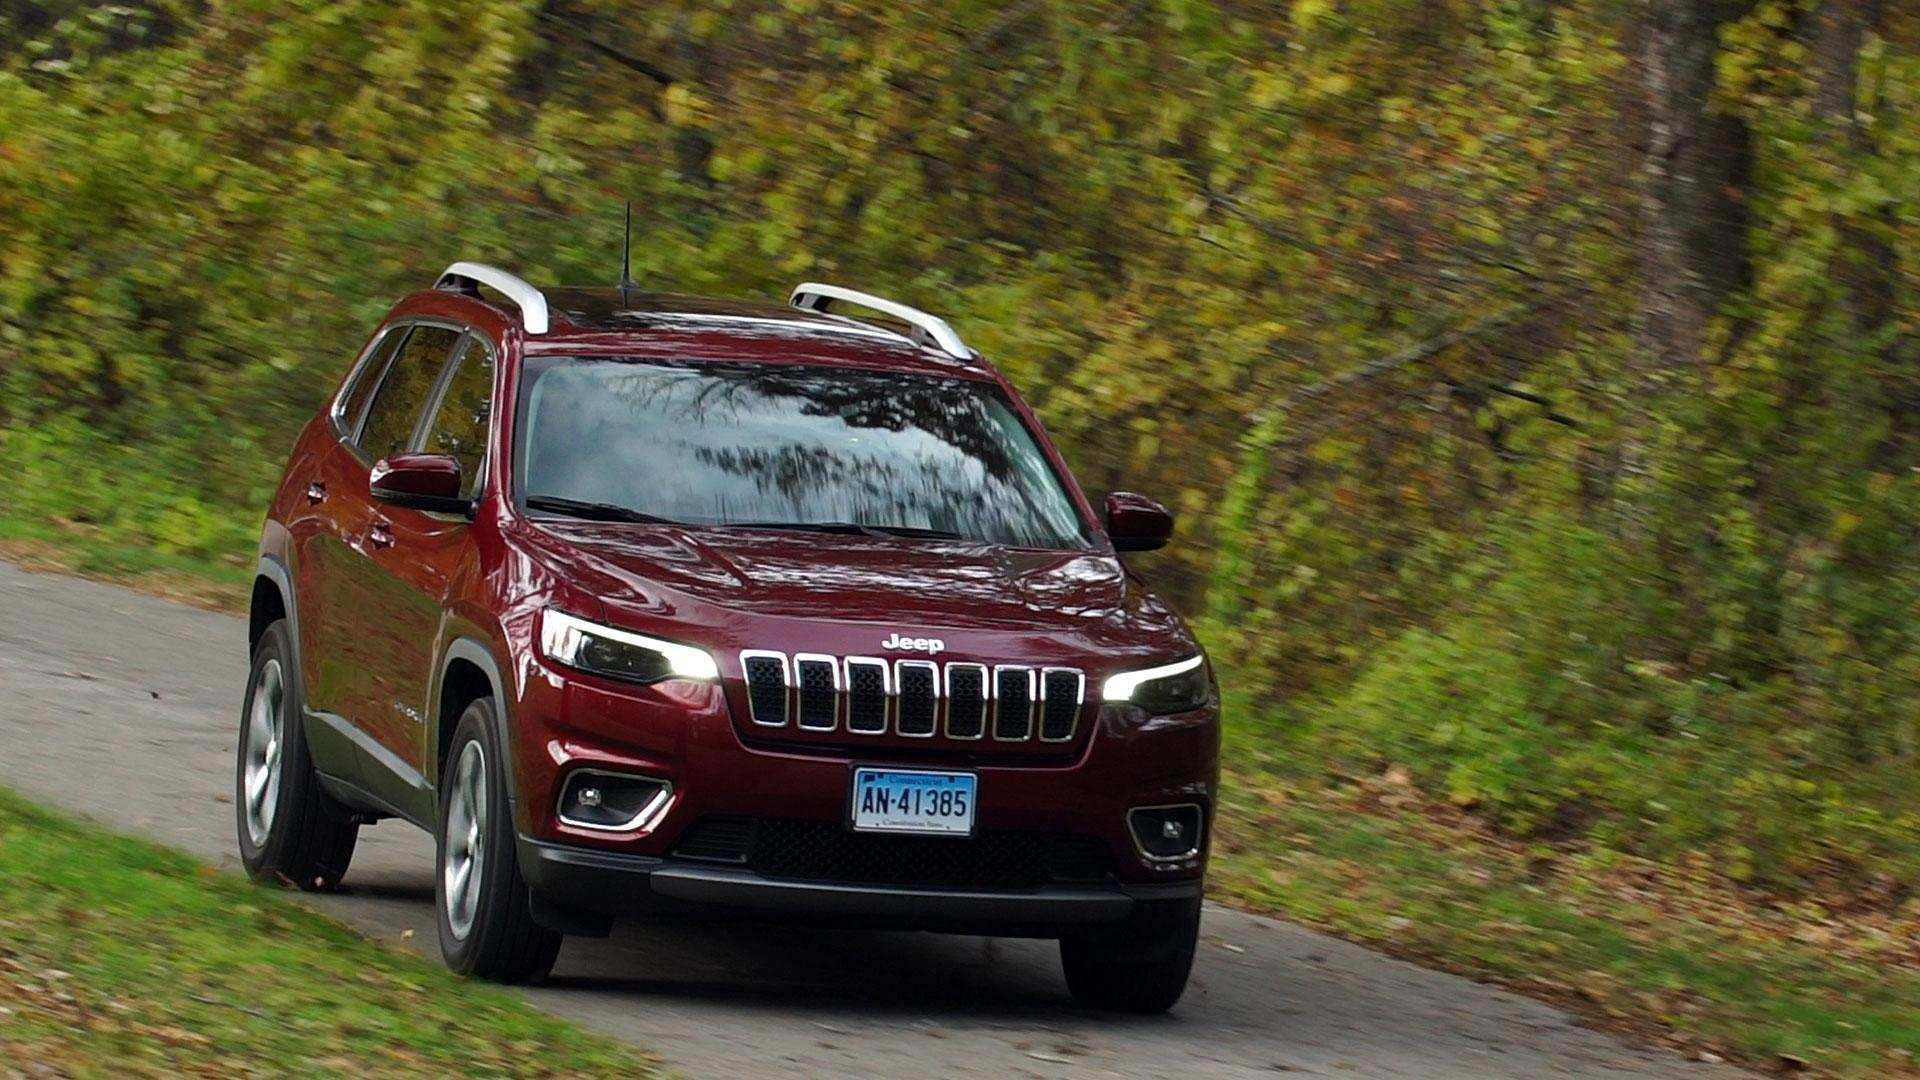 16 All New 2019 Jeep 2 0 Turbo Mpg Concept